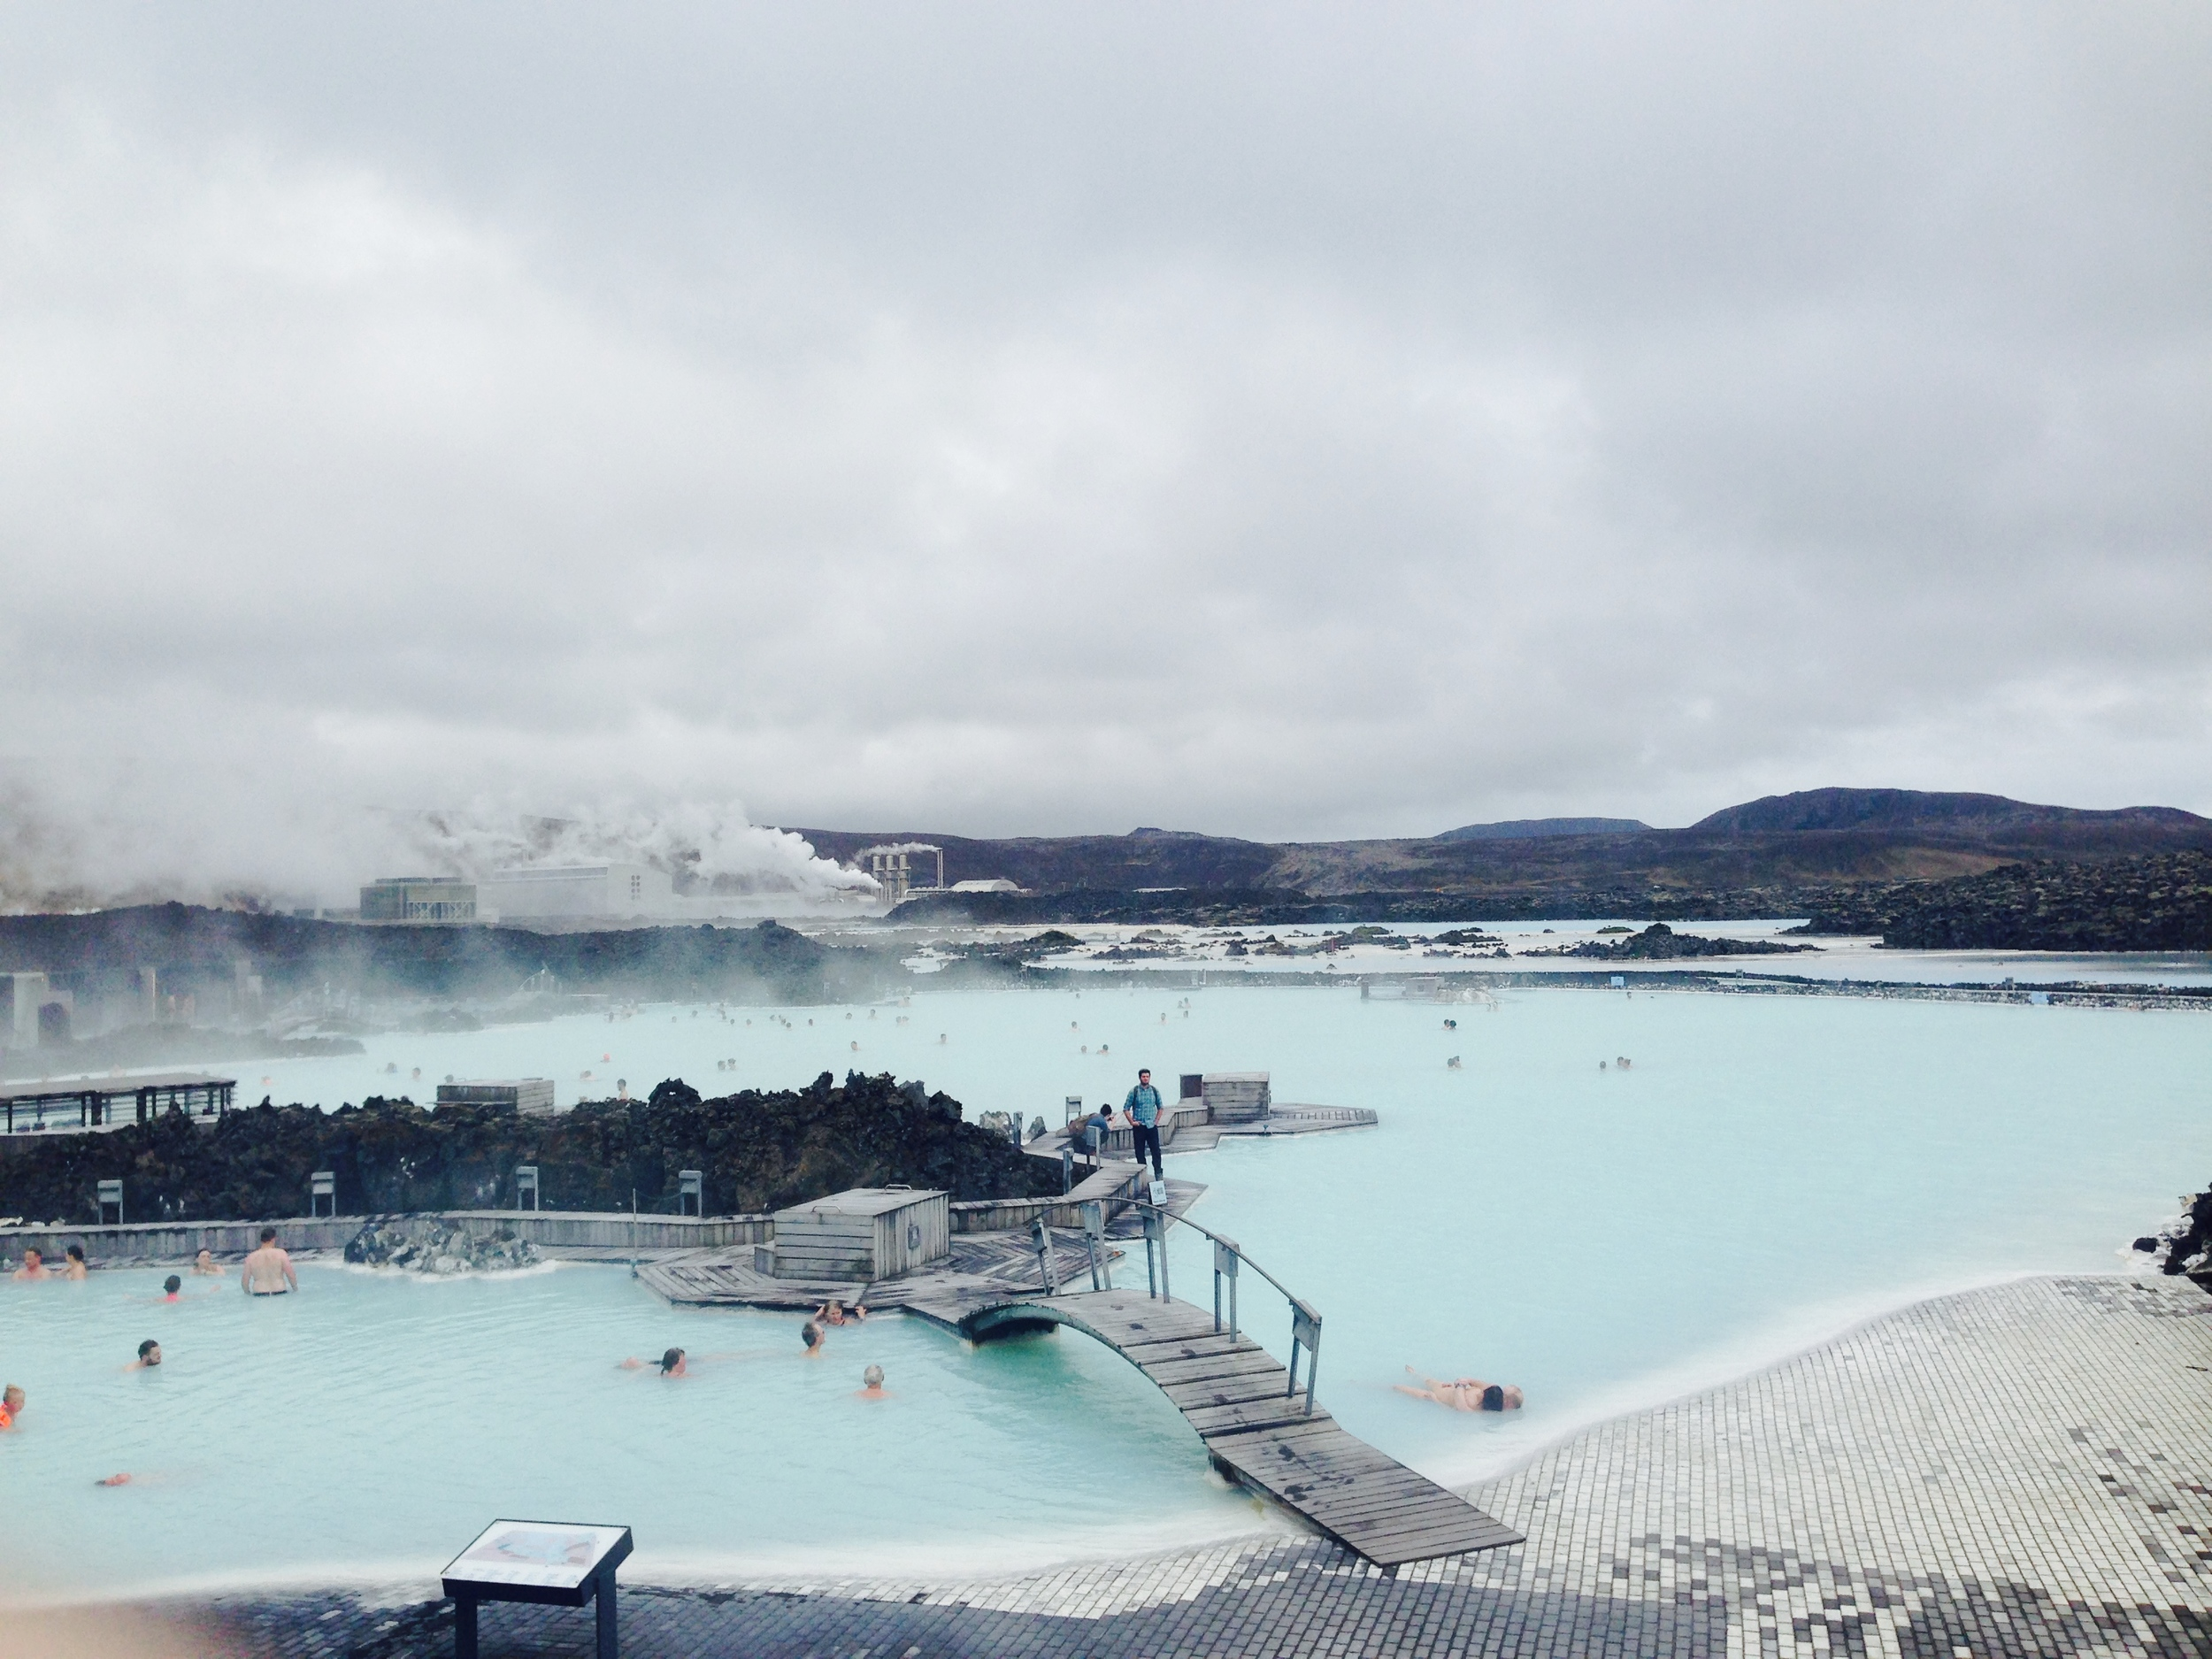 The Blue Lagoon is the perfect 40 degrees on a misty May afternoon. Bath your way to bliss, wading through this mystic blue lagoon heated by a nearby geothermal plant. Indulge yourself with fresh juice from the floating bar.